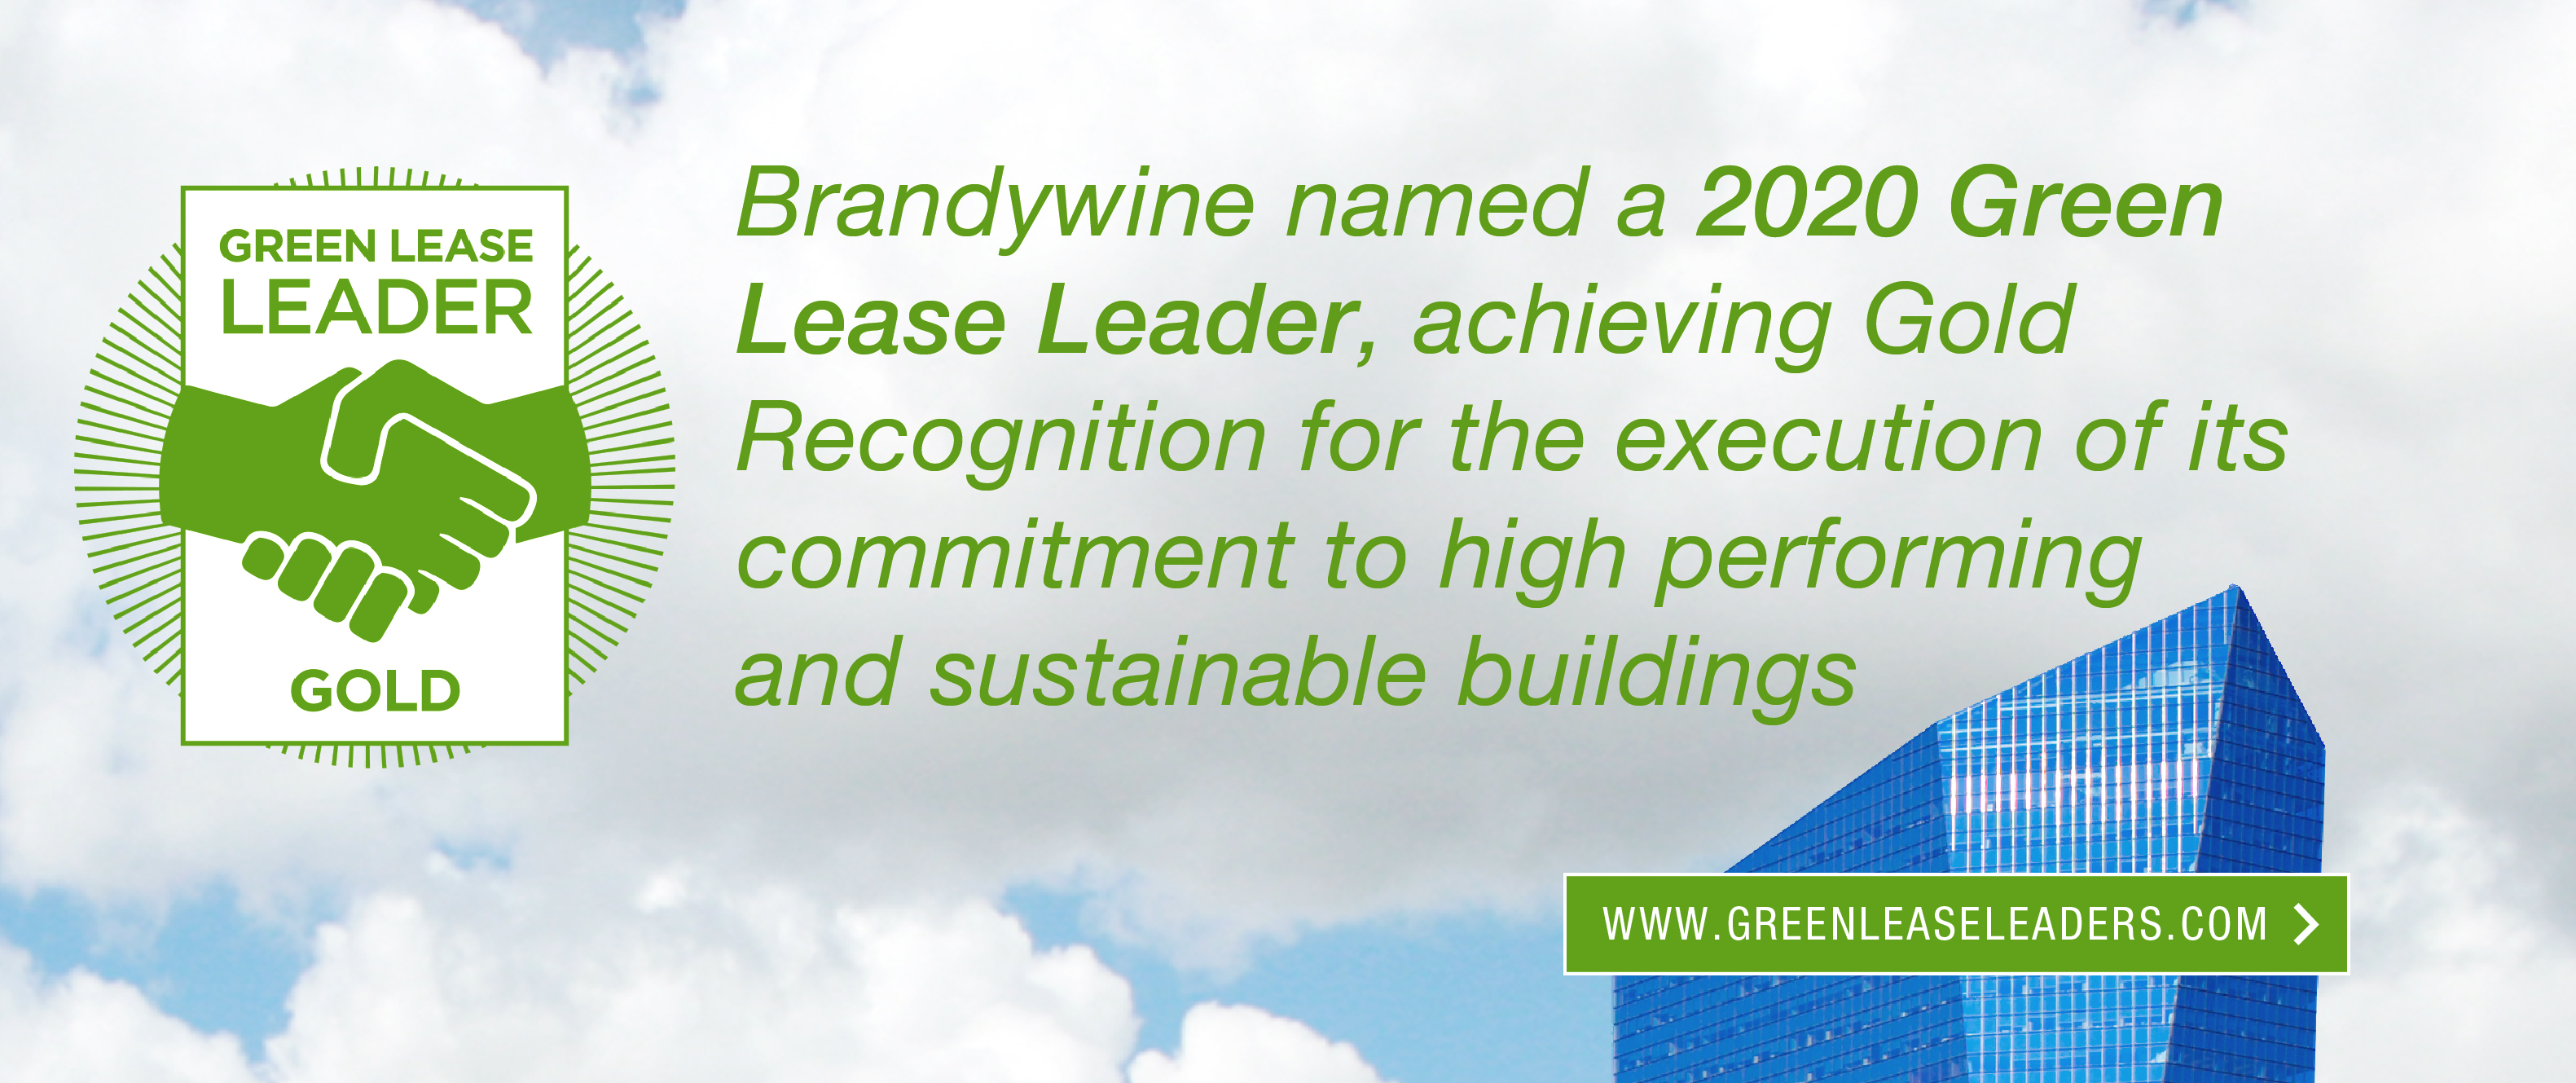 Brandywine named a 2020 Green Lease Leader